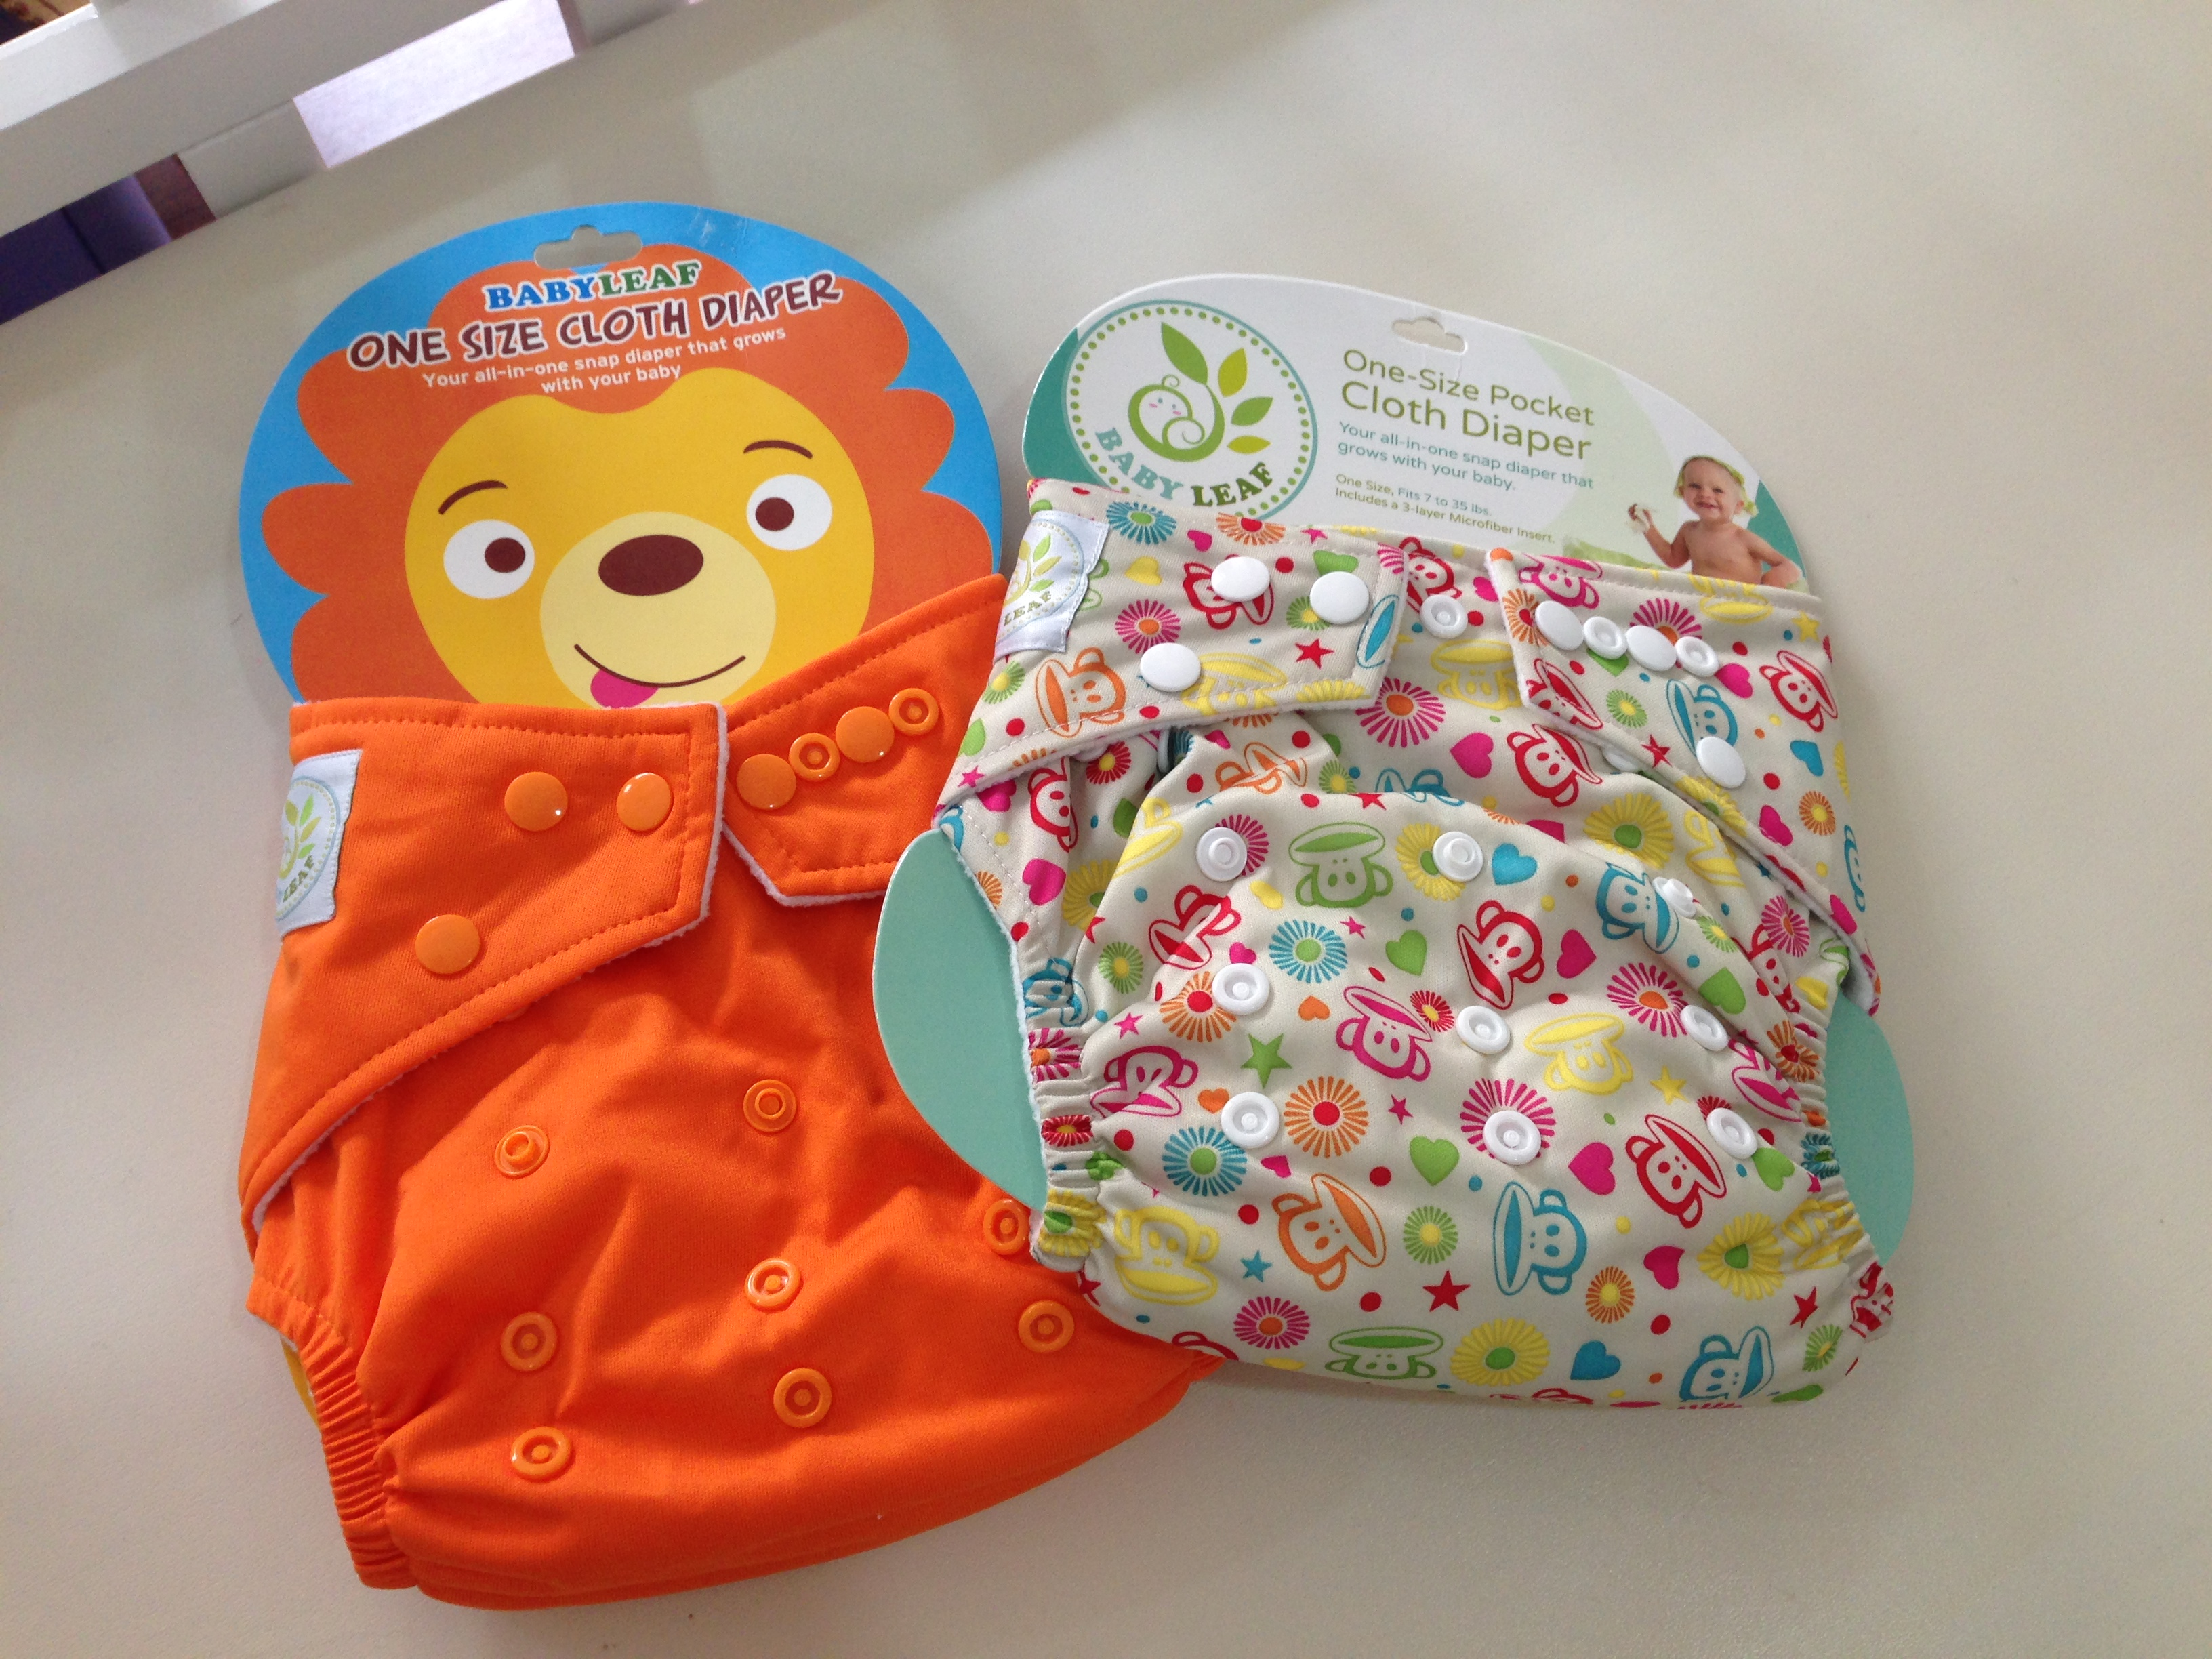 Baby Leaf cloth diaper for Light